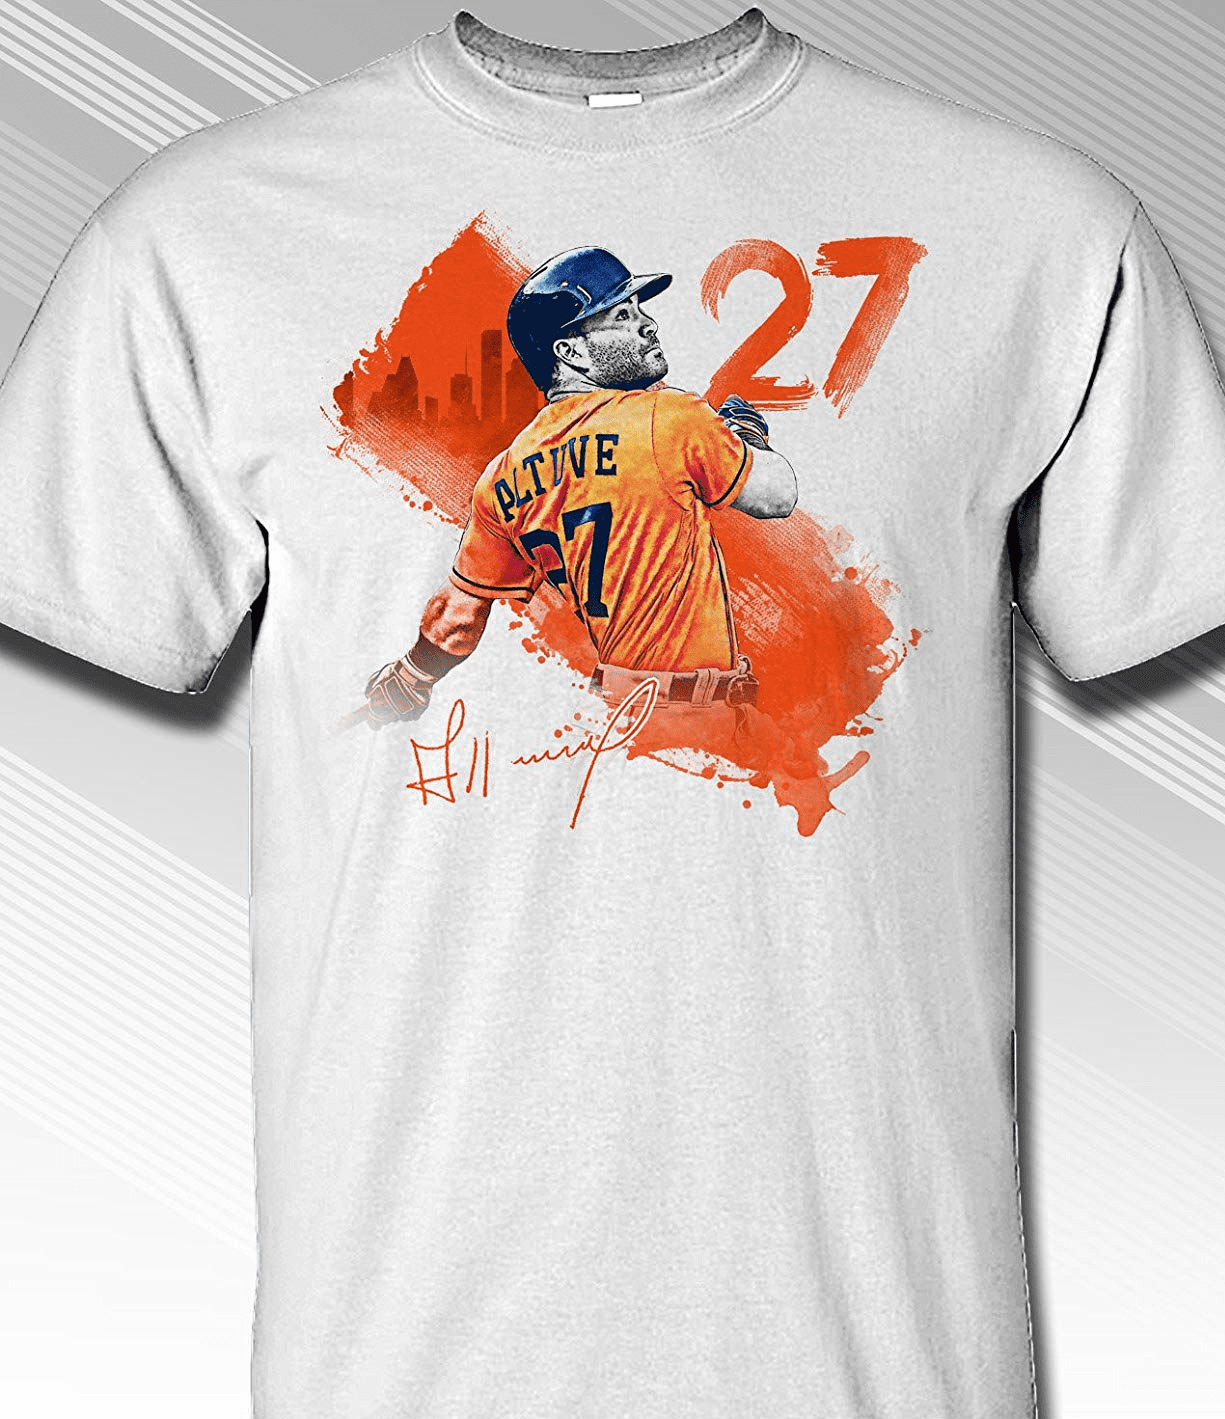 Jose Altuve Houston #27 Paint Splash T-Shirt<br>Short or Long Sleeve<br>Youth Med to Adult 4X